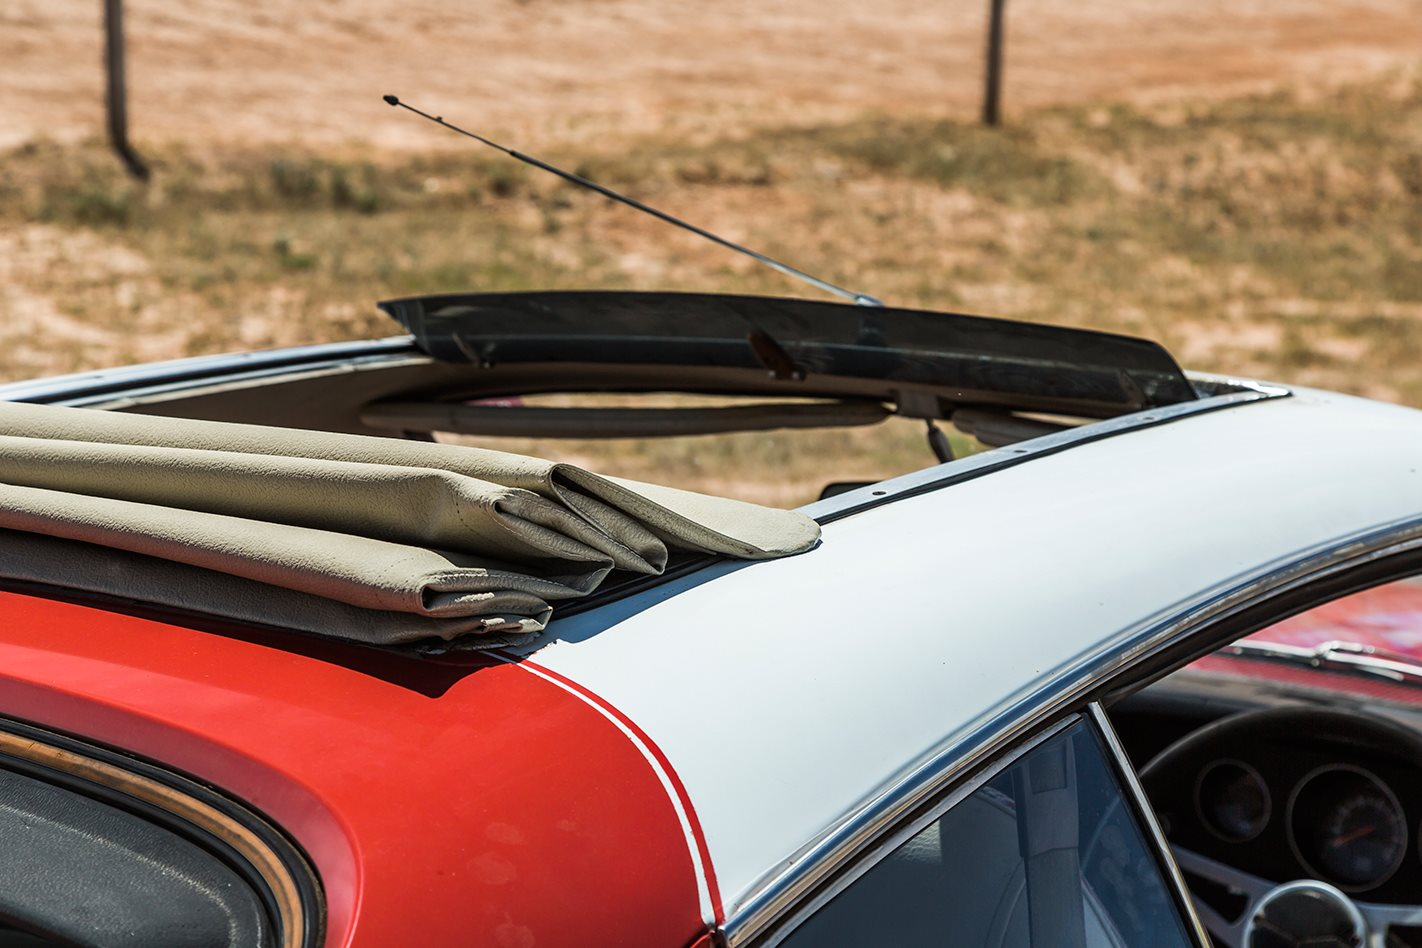 Chrysler VJ Valiant Charger sunroof